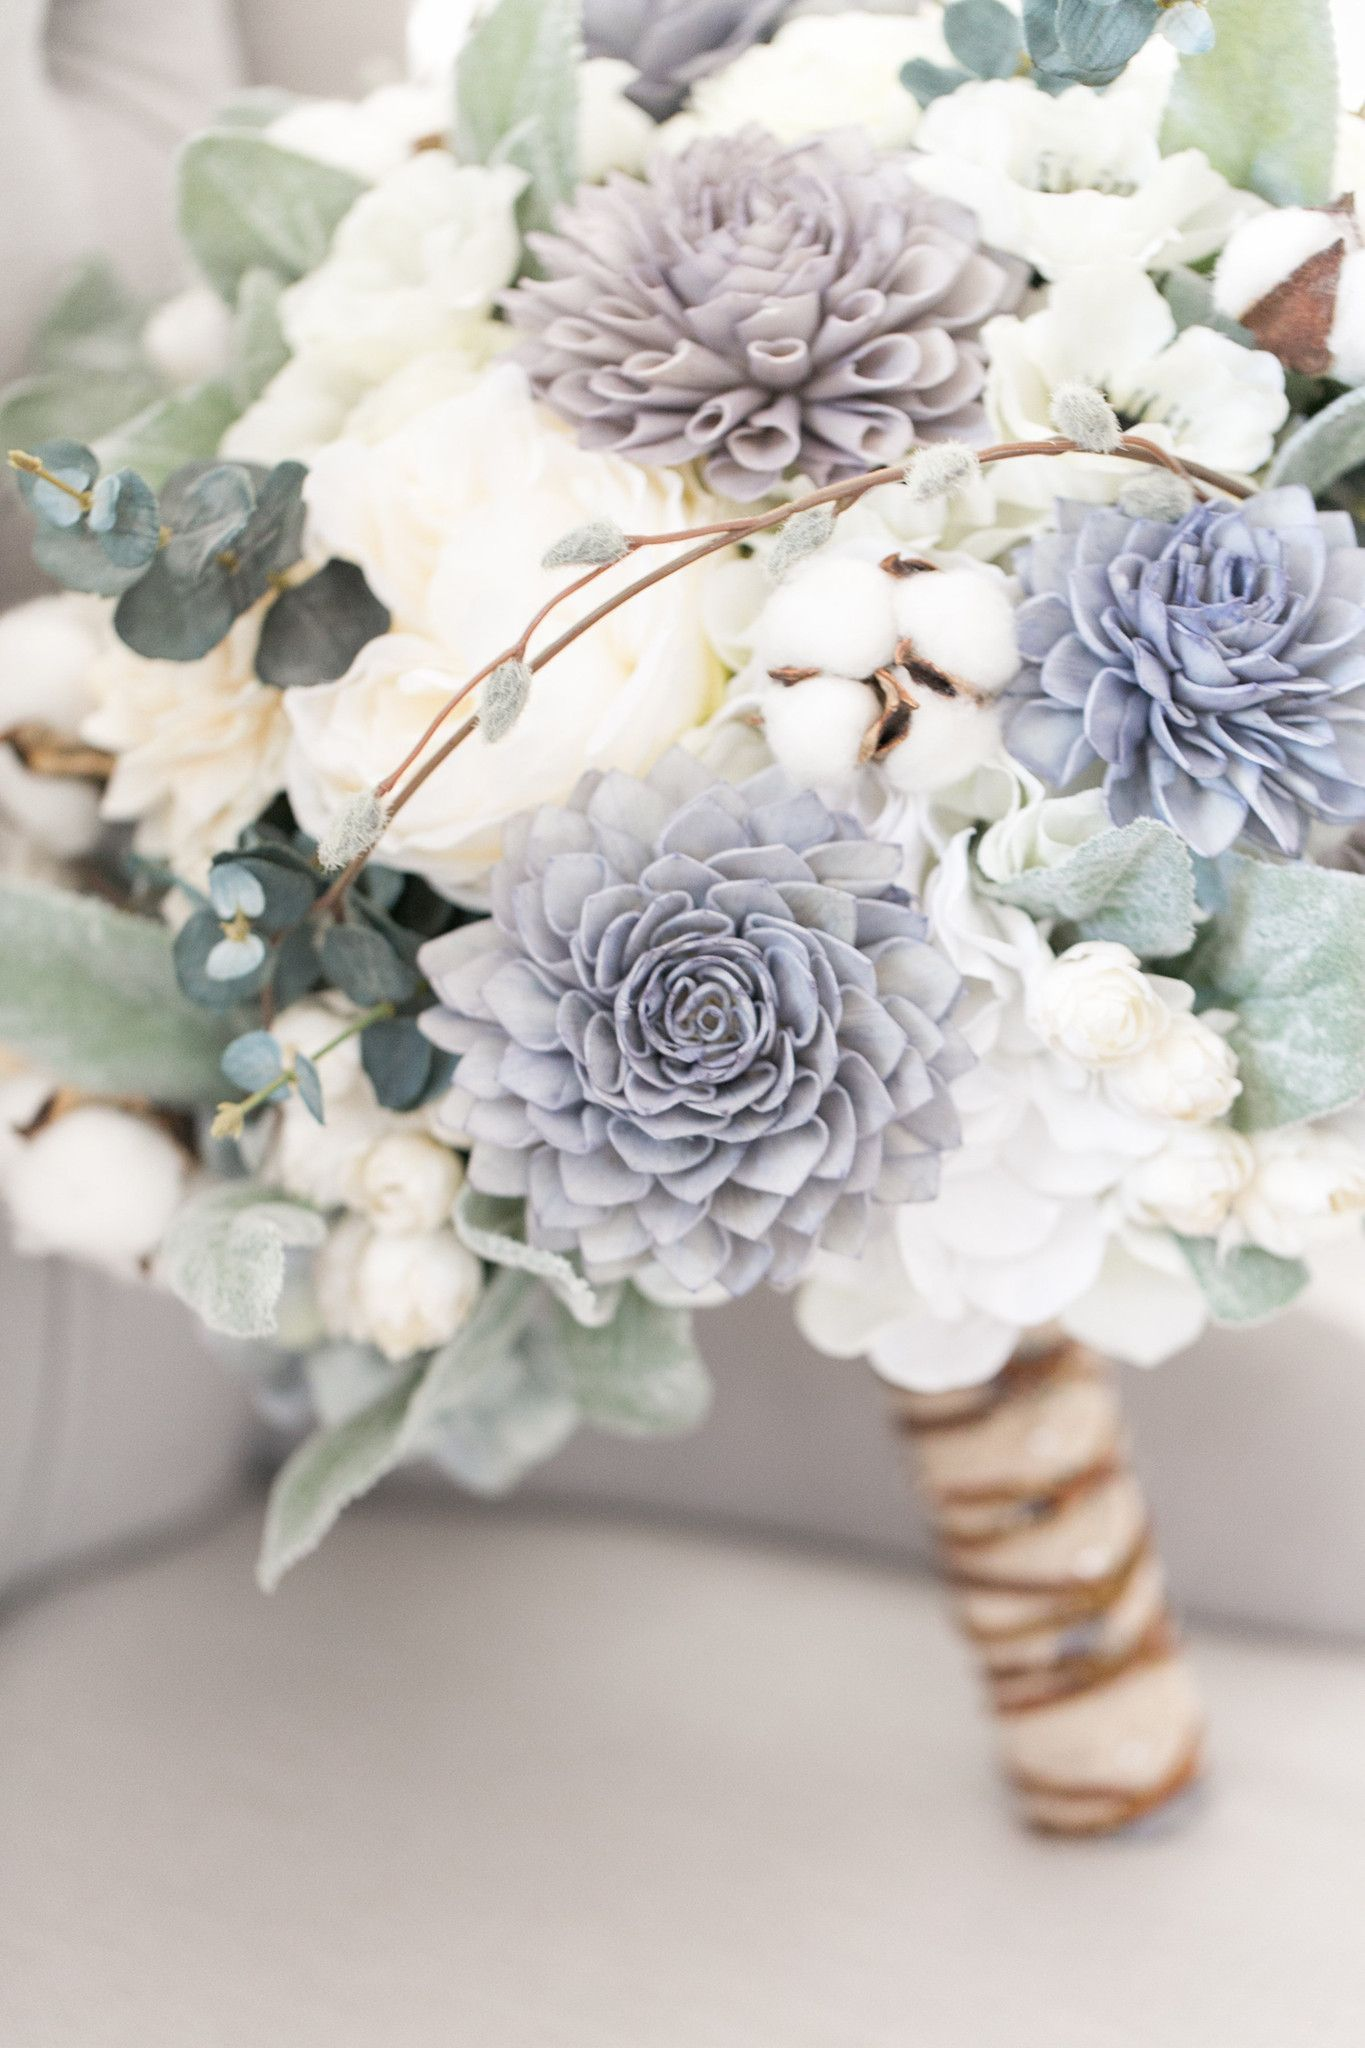 Colorful Wooden Flowers Wedding Bouquets Photo - Wedding and flowers ...